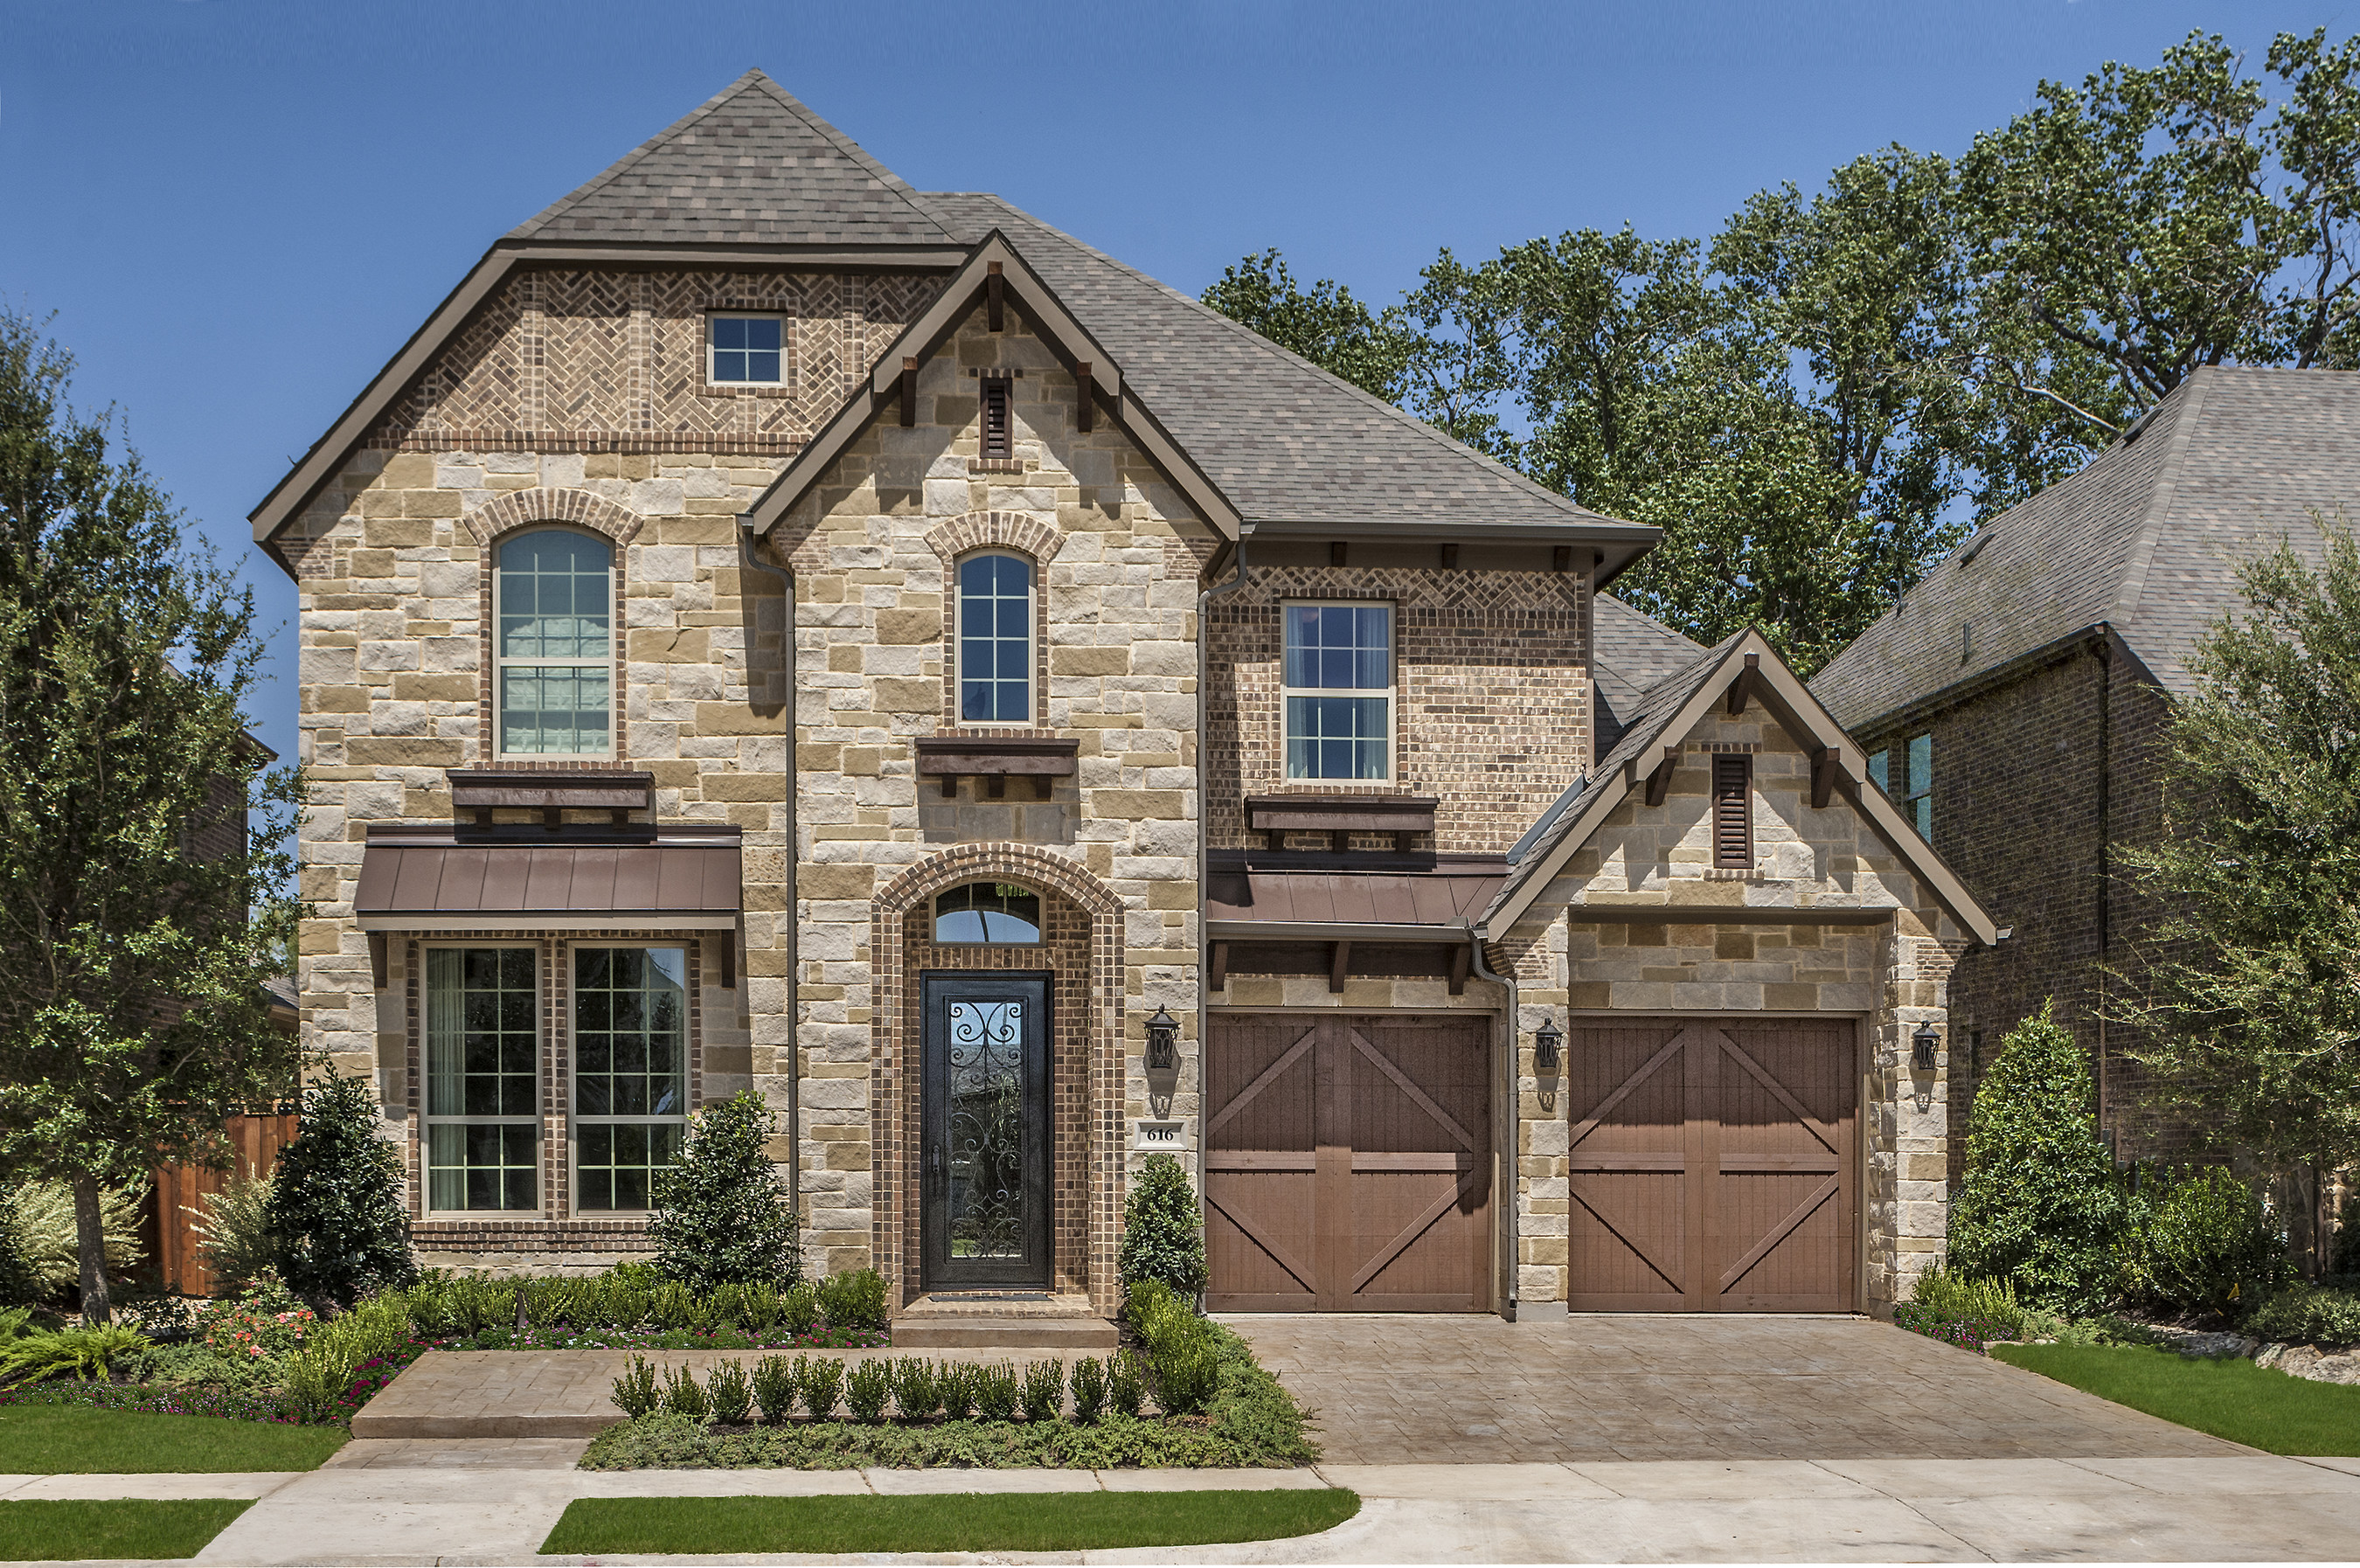 Standard pacific homes offers new home designs in coppell for Pacific image home designs ltd